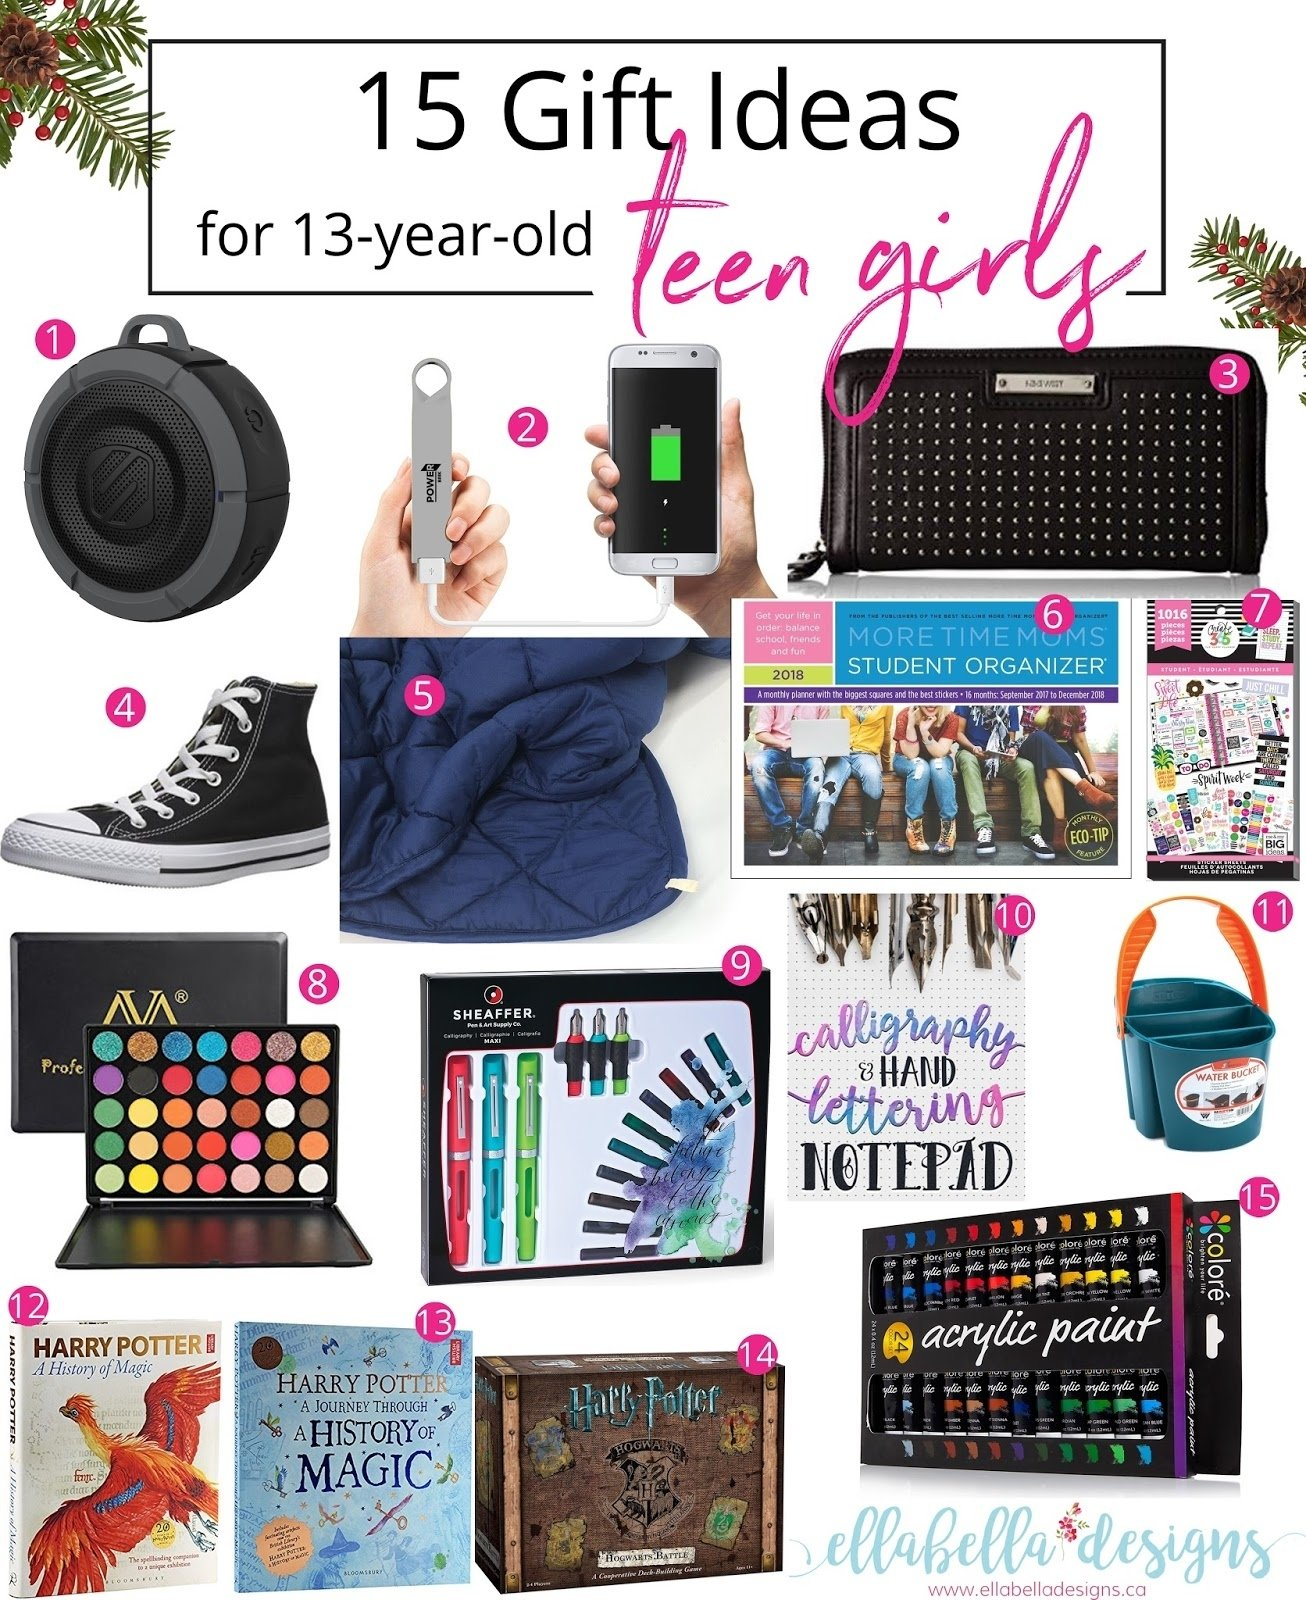 10 Ideal Gift Ideas For A 13 Year Old Girl ellabella designs 15 gift ideas for 13 year old teen girls 2